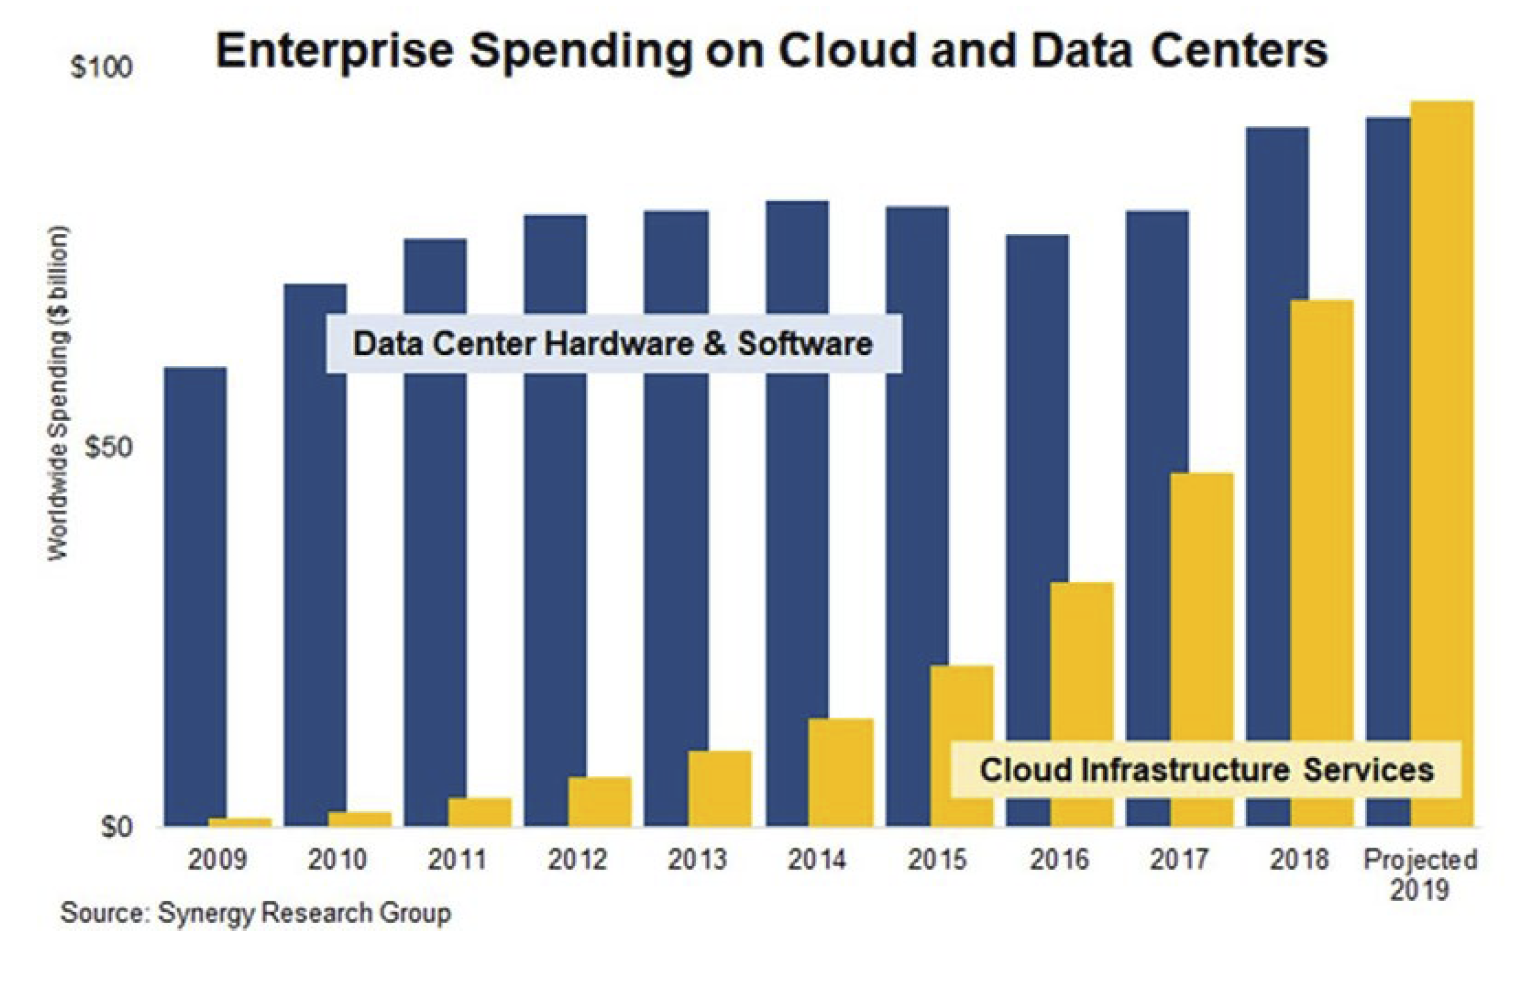 Enterprise Spending on Cloud and Data Centers. Source: Synergy Research Group